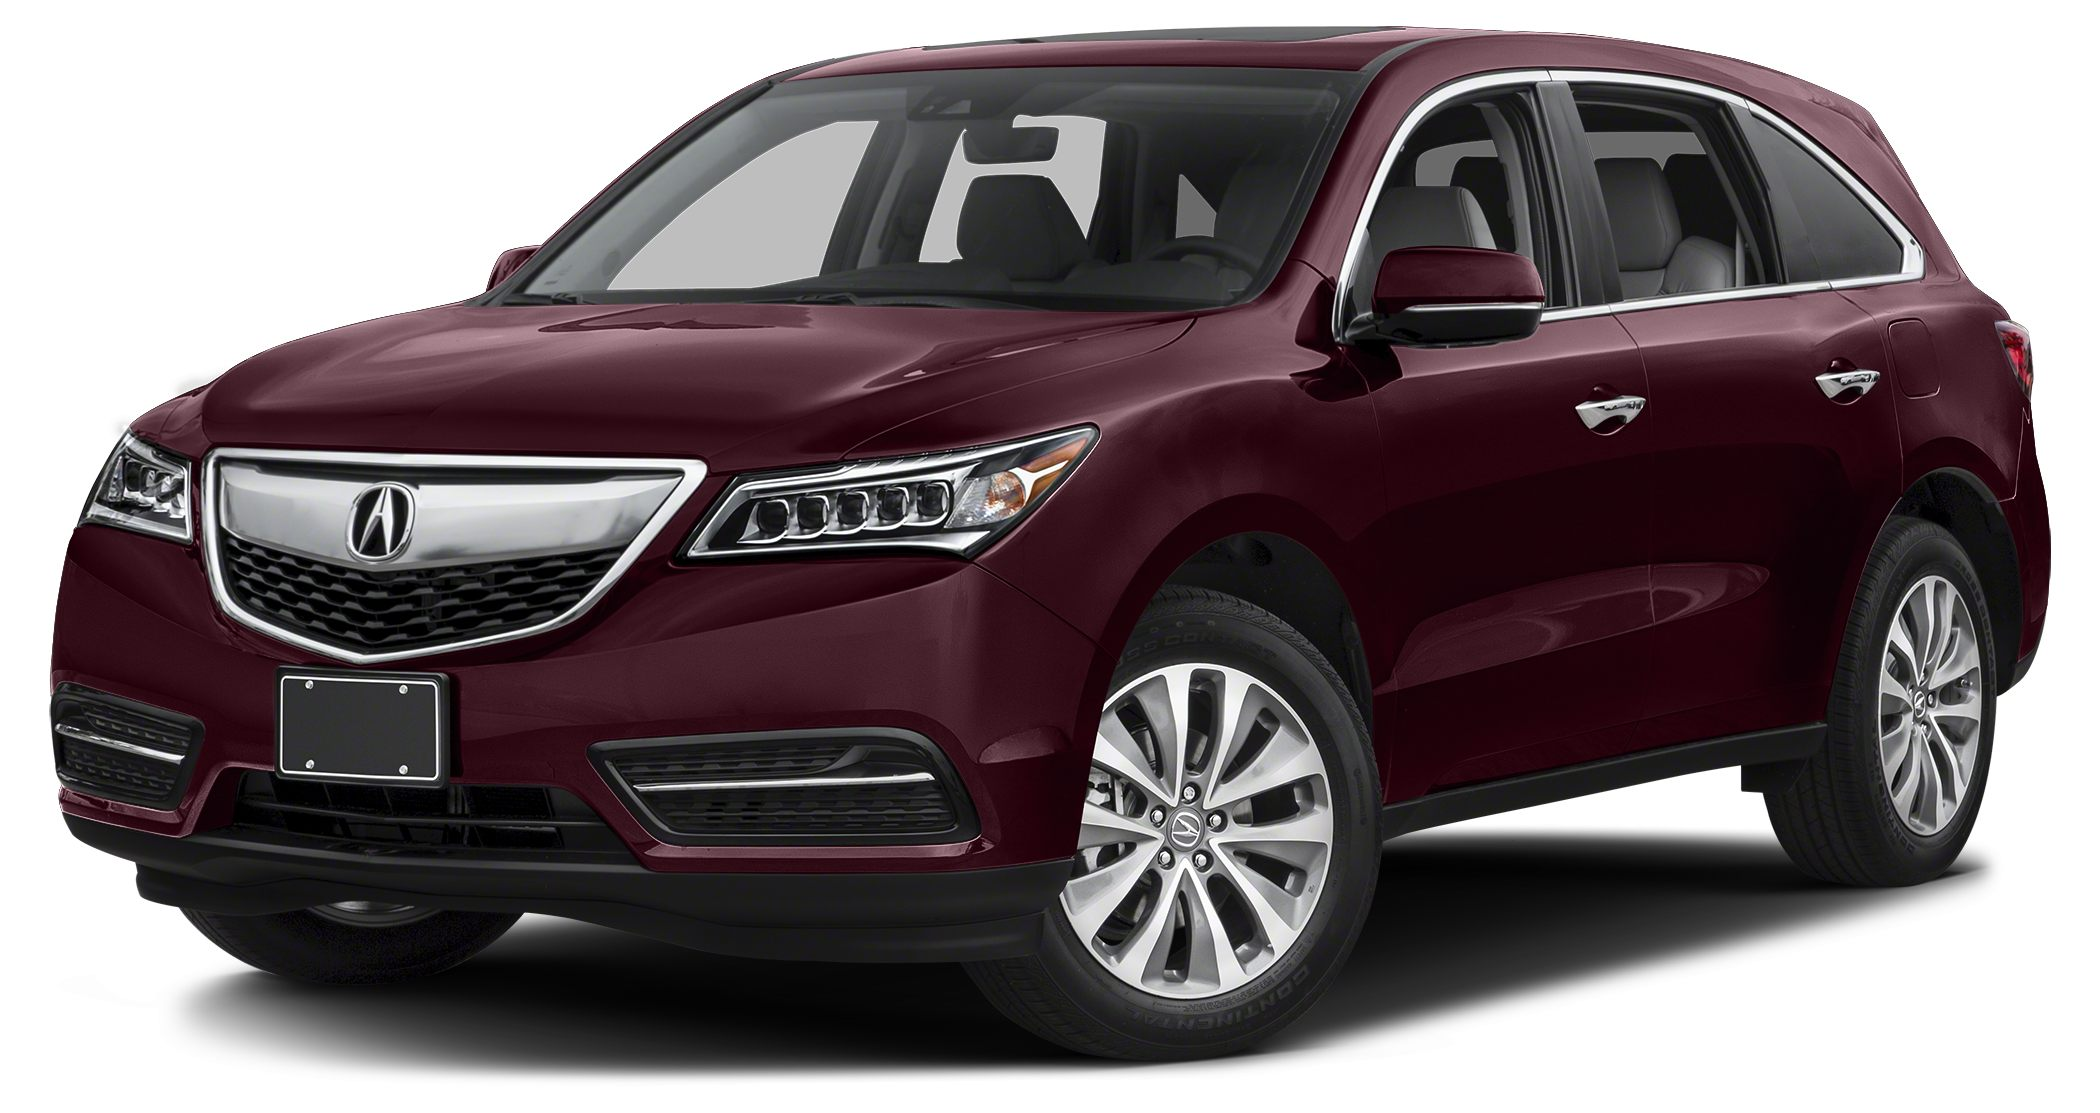 2016 Acura MDX 35 Technology w AcuraWatch The Acura MDX is as refined as it is sophisticated It